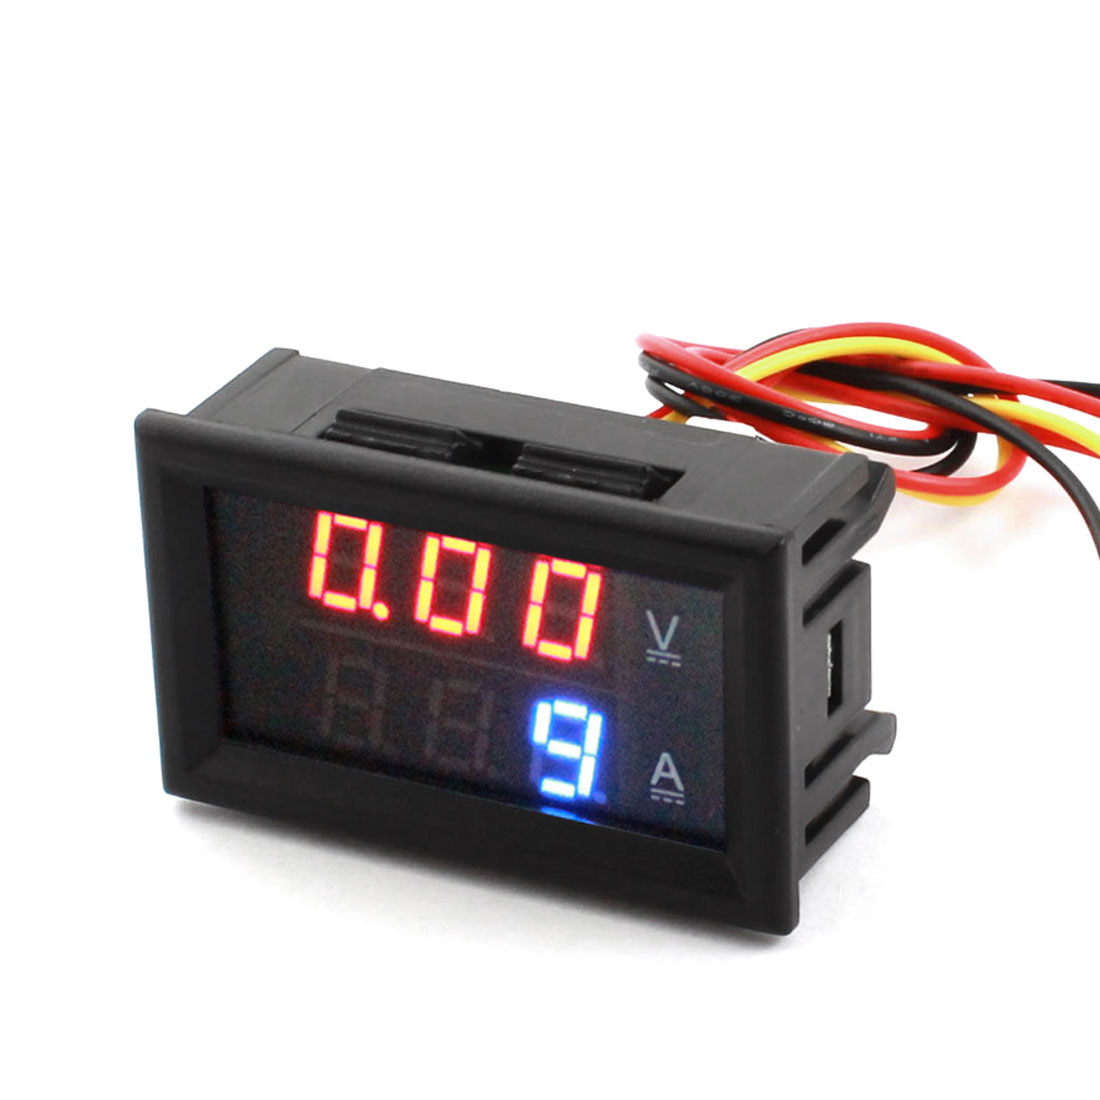 LED Display Digital Current Voltage Meter Ammeter Voltmeter DC 0-100V 100A